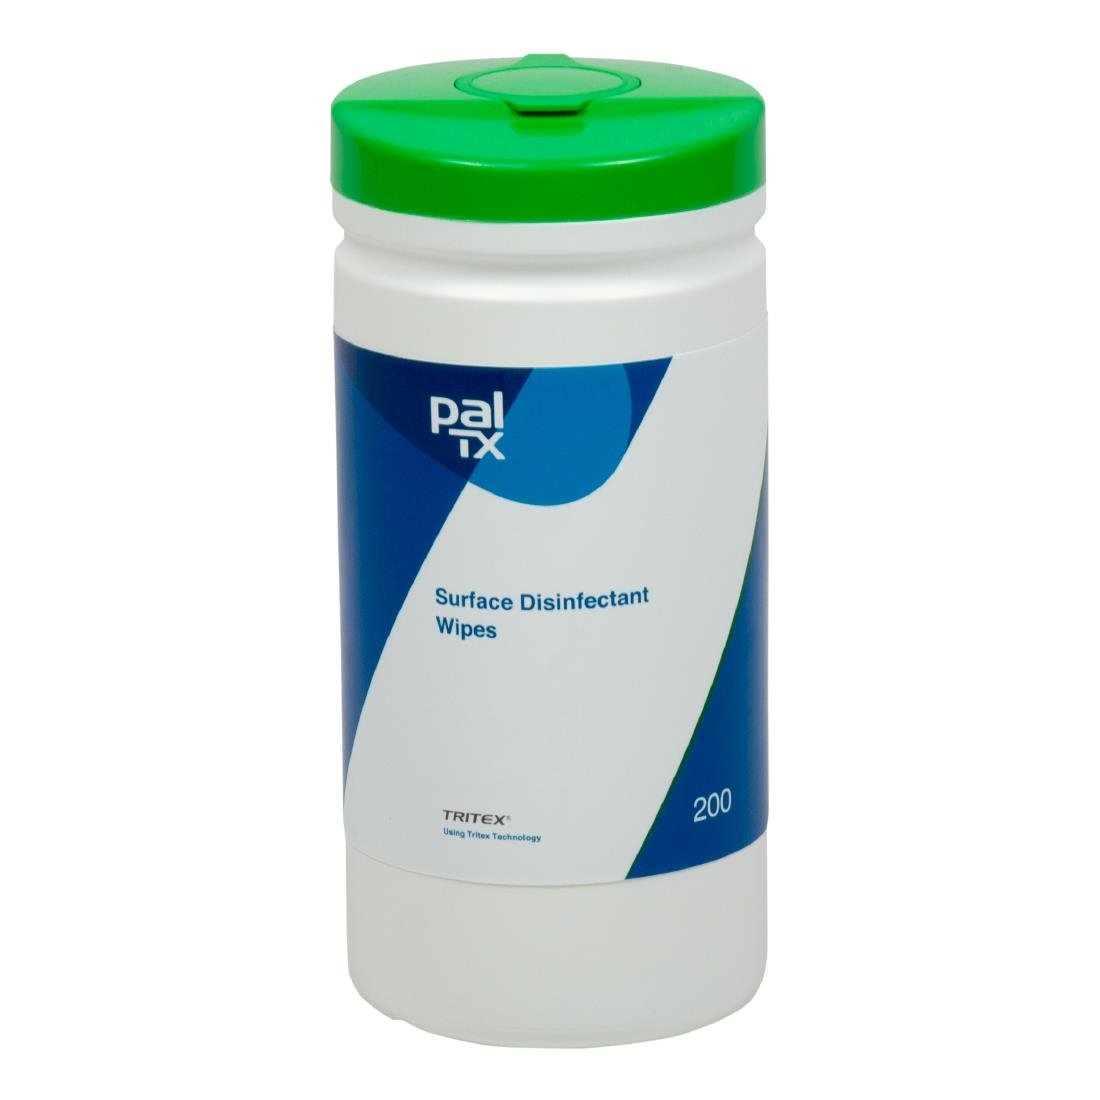 Pal TX Disinfectant Surface Wipes (200 Pack)